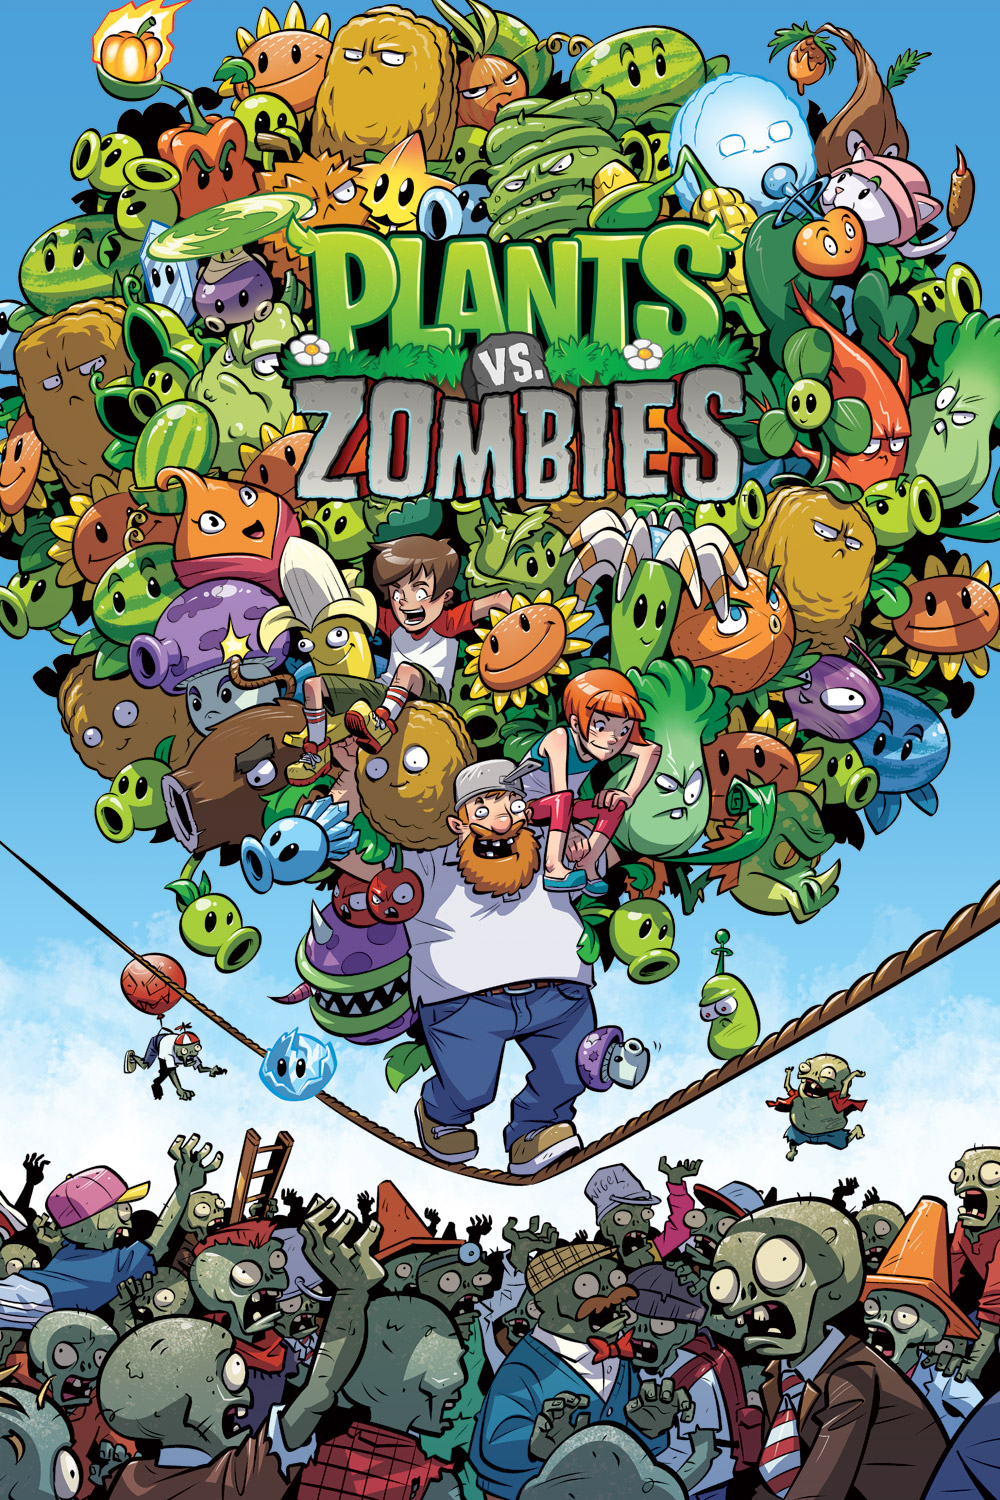 Plants vs Zombies #7